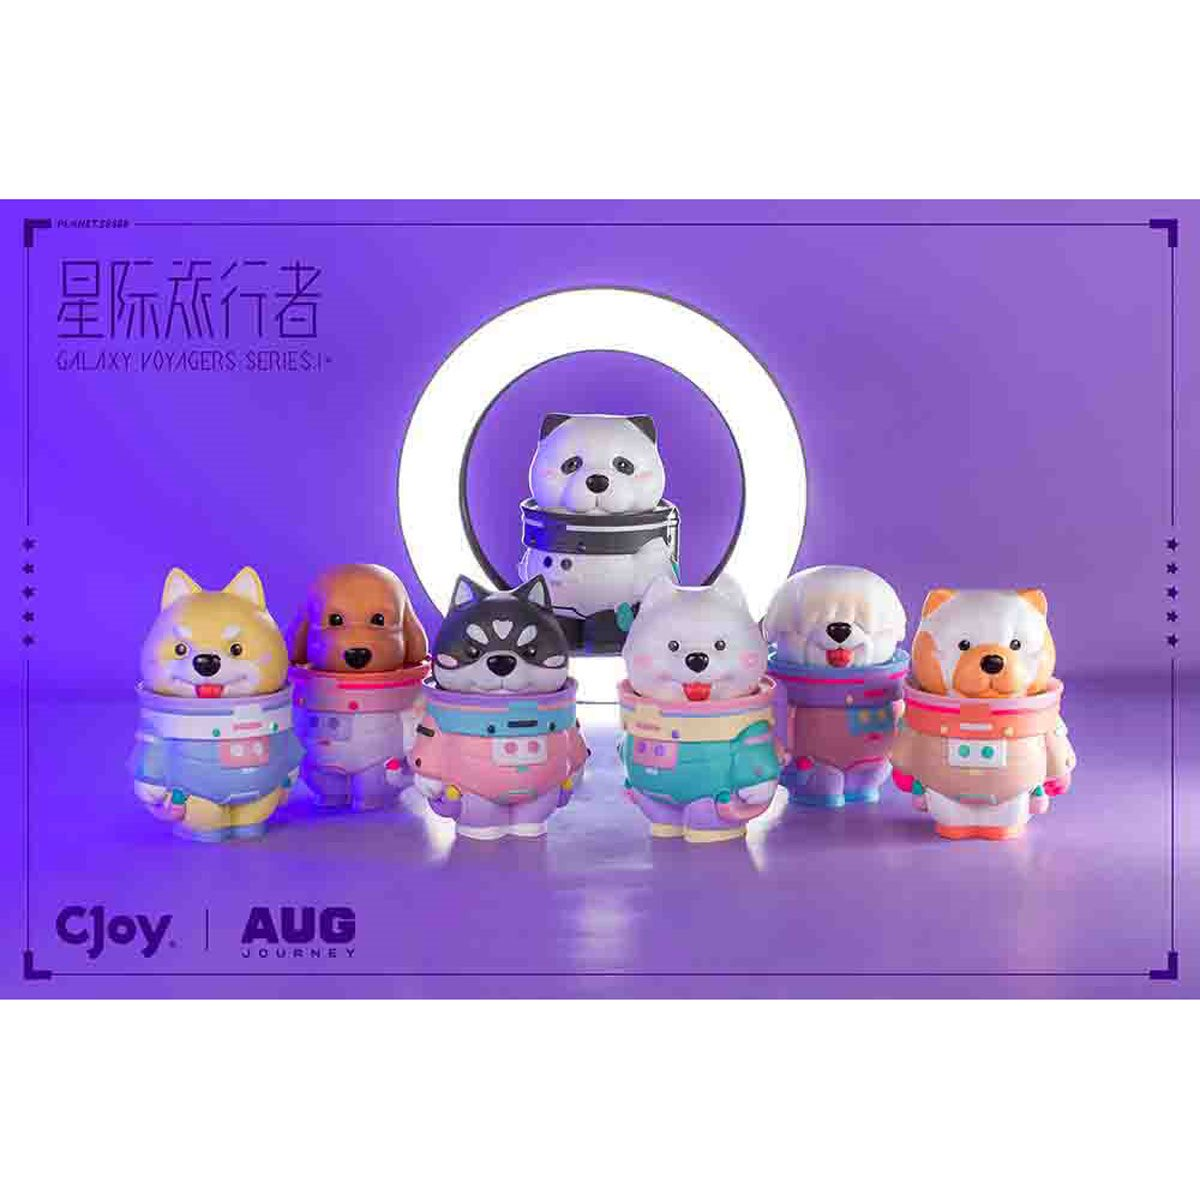 Pick One That You Like blind box-Opened Box CJoy x AUG Galaxy Voyagers Seriesj